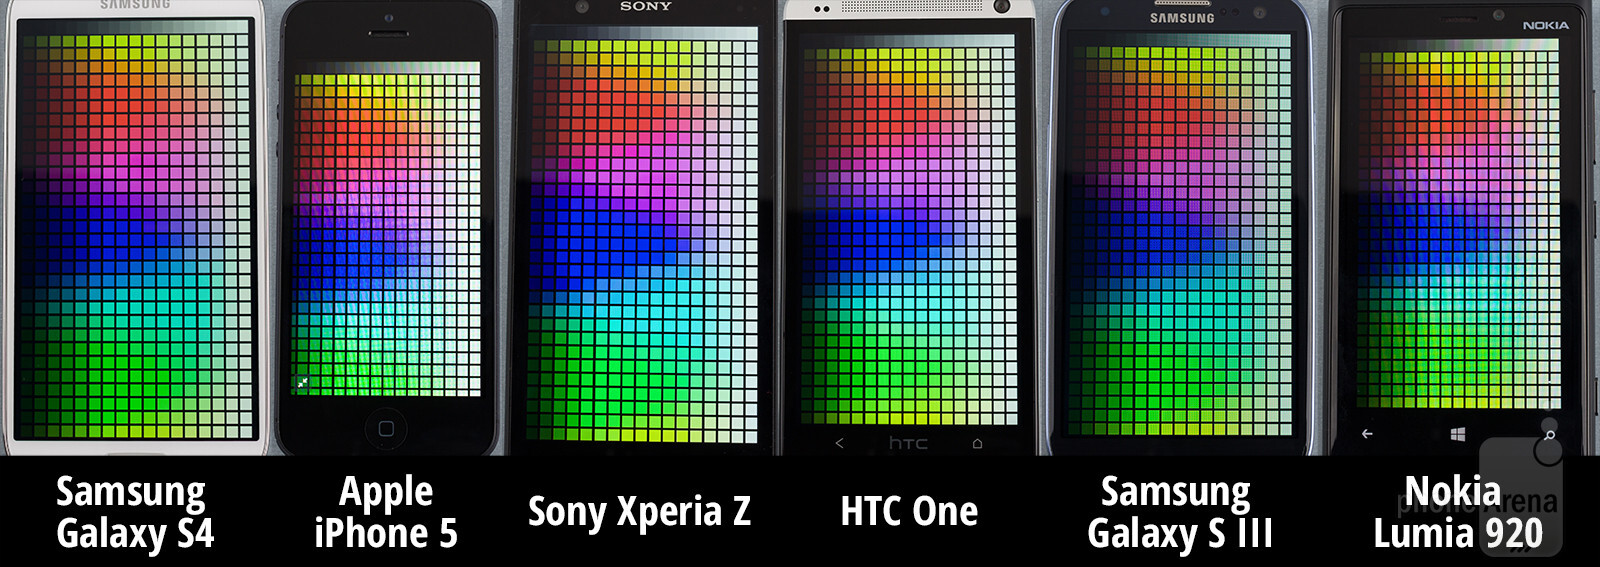 Galaxy S4 vs iPhone 5 vs Xperia Z vs One vs Galaxy S III vs Lumia 920Xperia Z Vs Iphone 5 Vs Galaxy S4